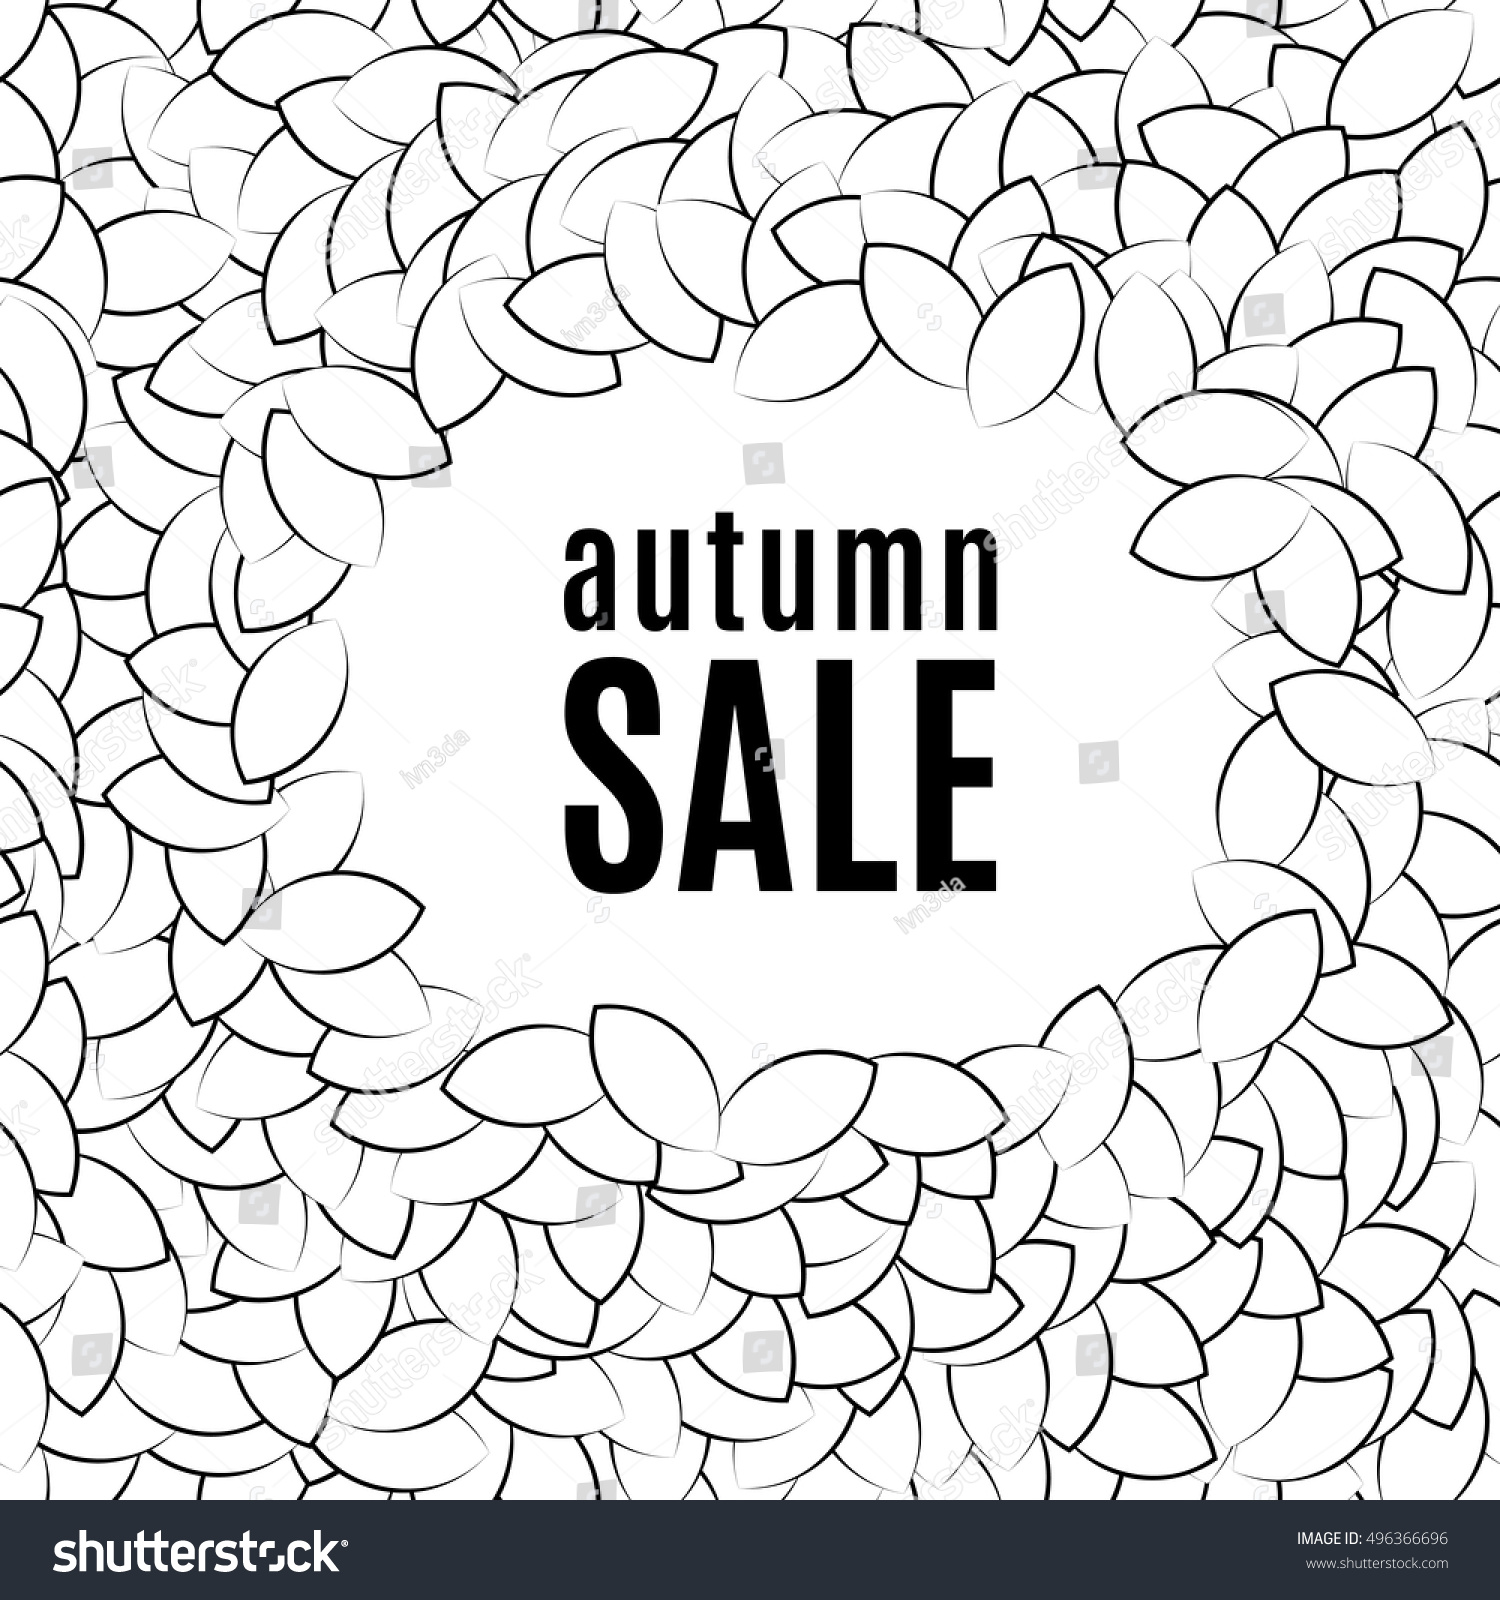 Background Of A Pile Leaves Arranged In Circles Labeled Autumn Sale